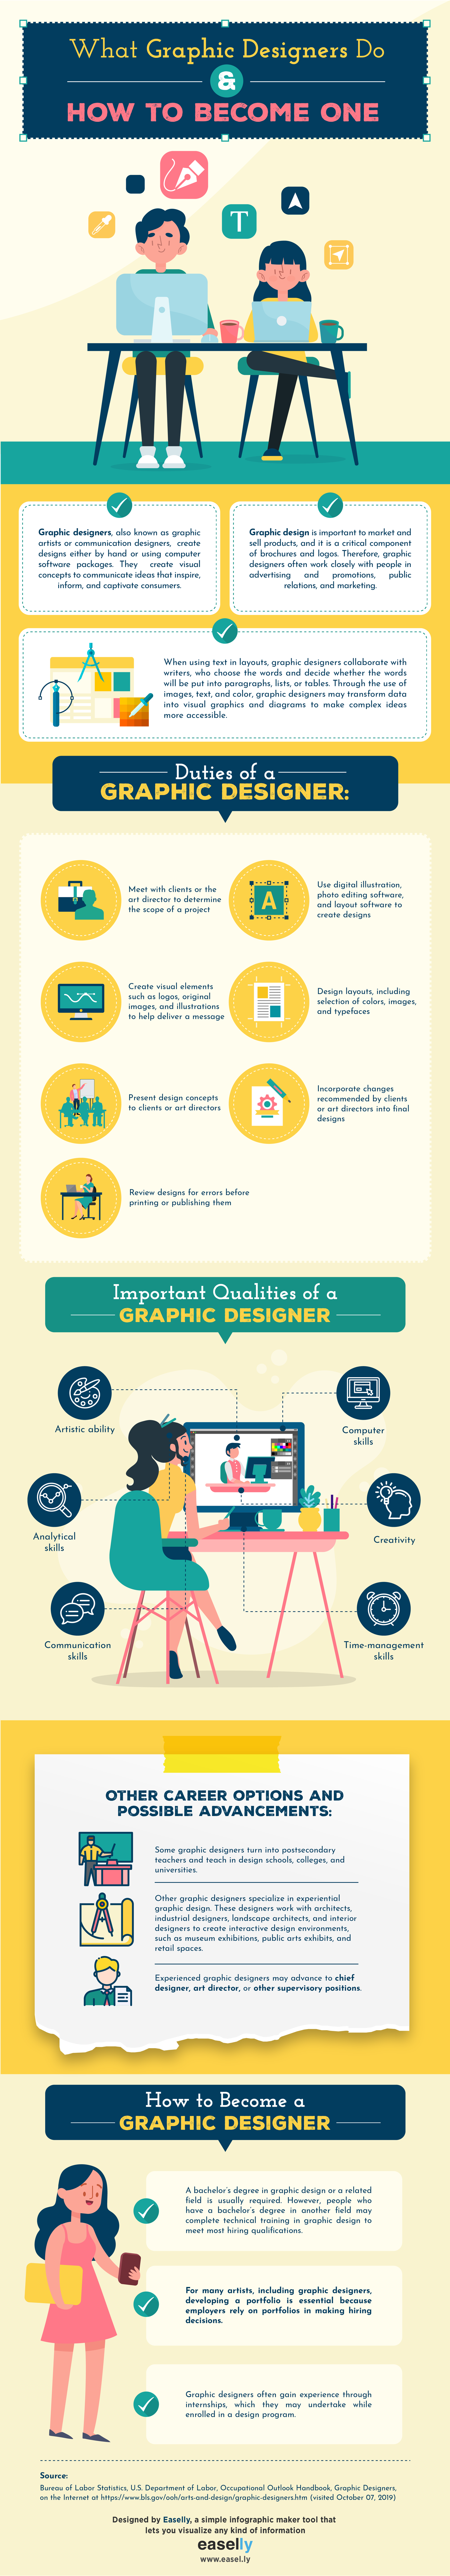 what graphic designers do infographic